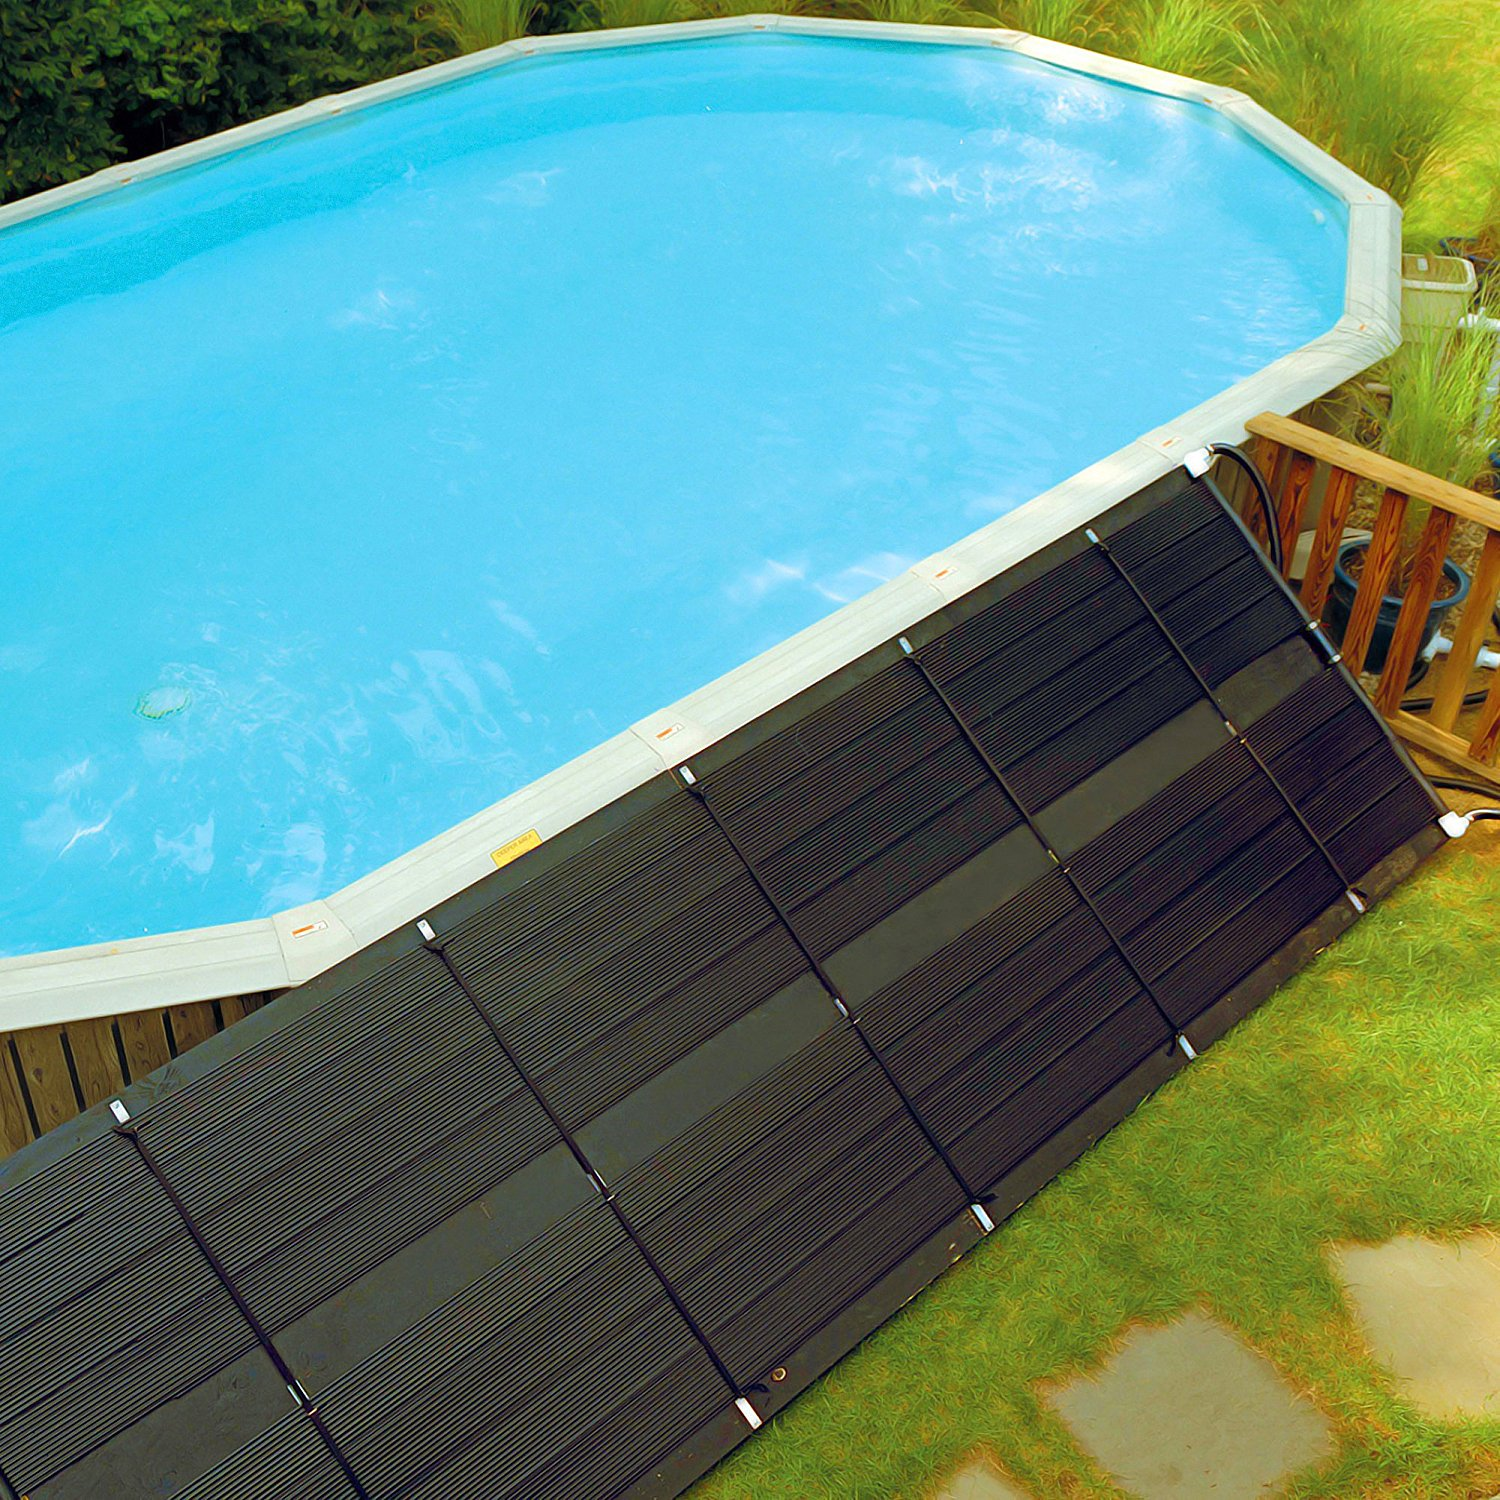 Best solar pool heater - Heated swimming pool running costs ...